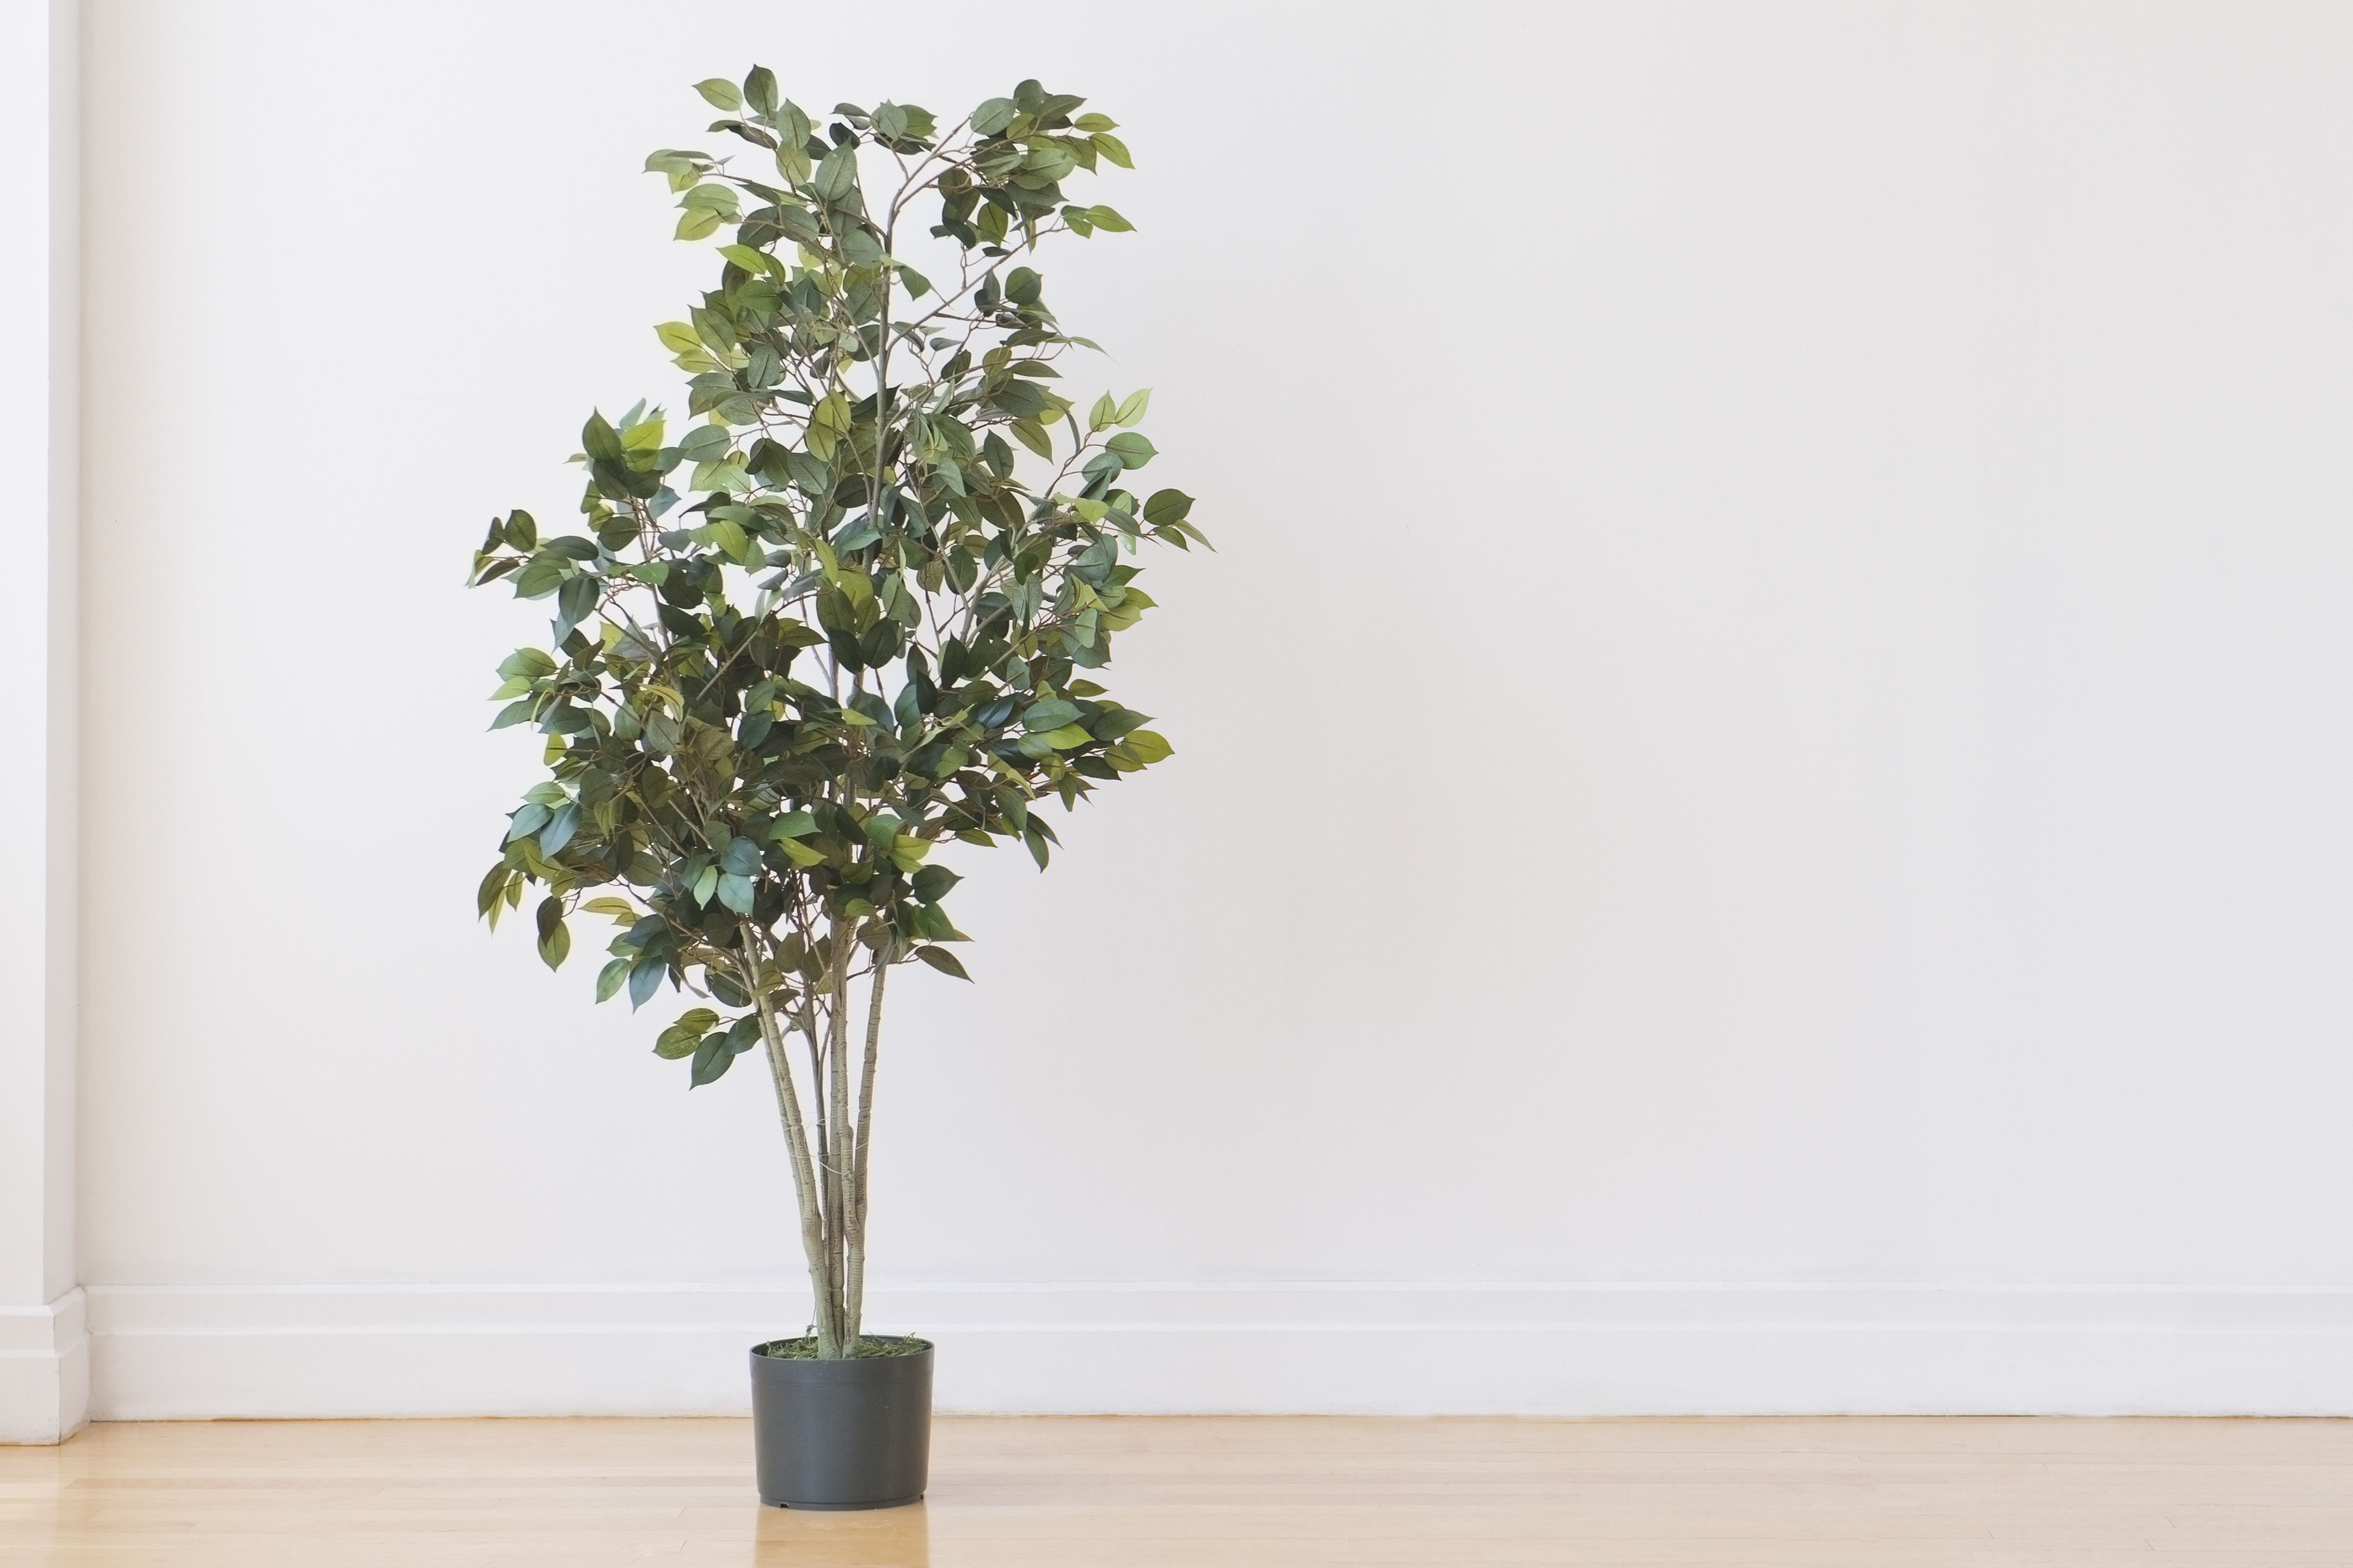 All About the Ficus Tree